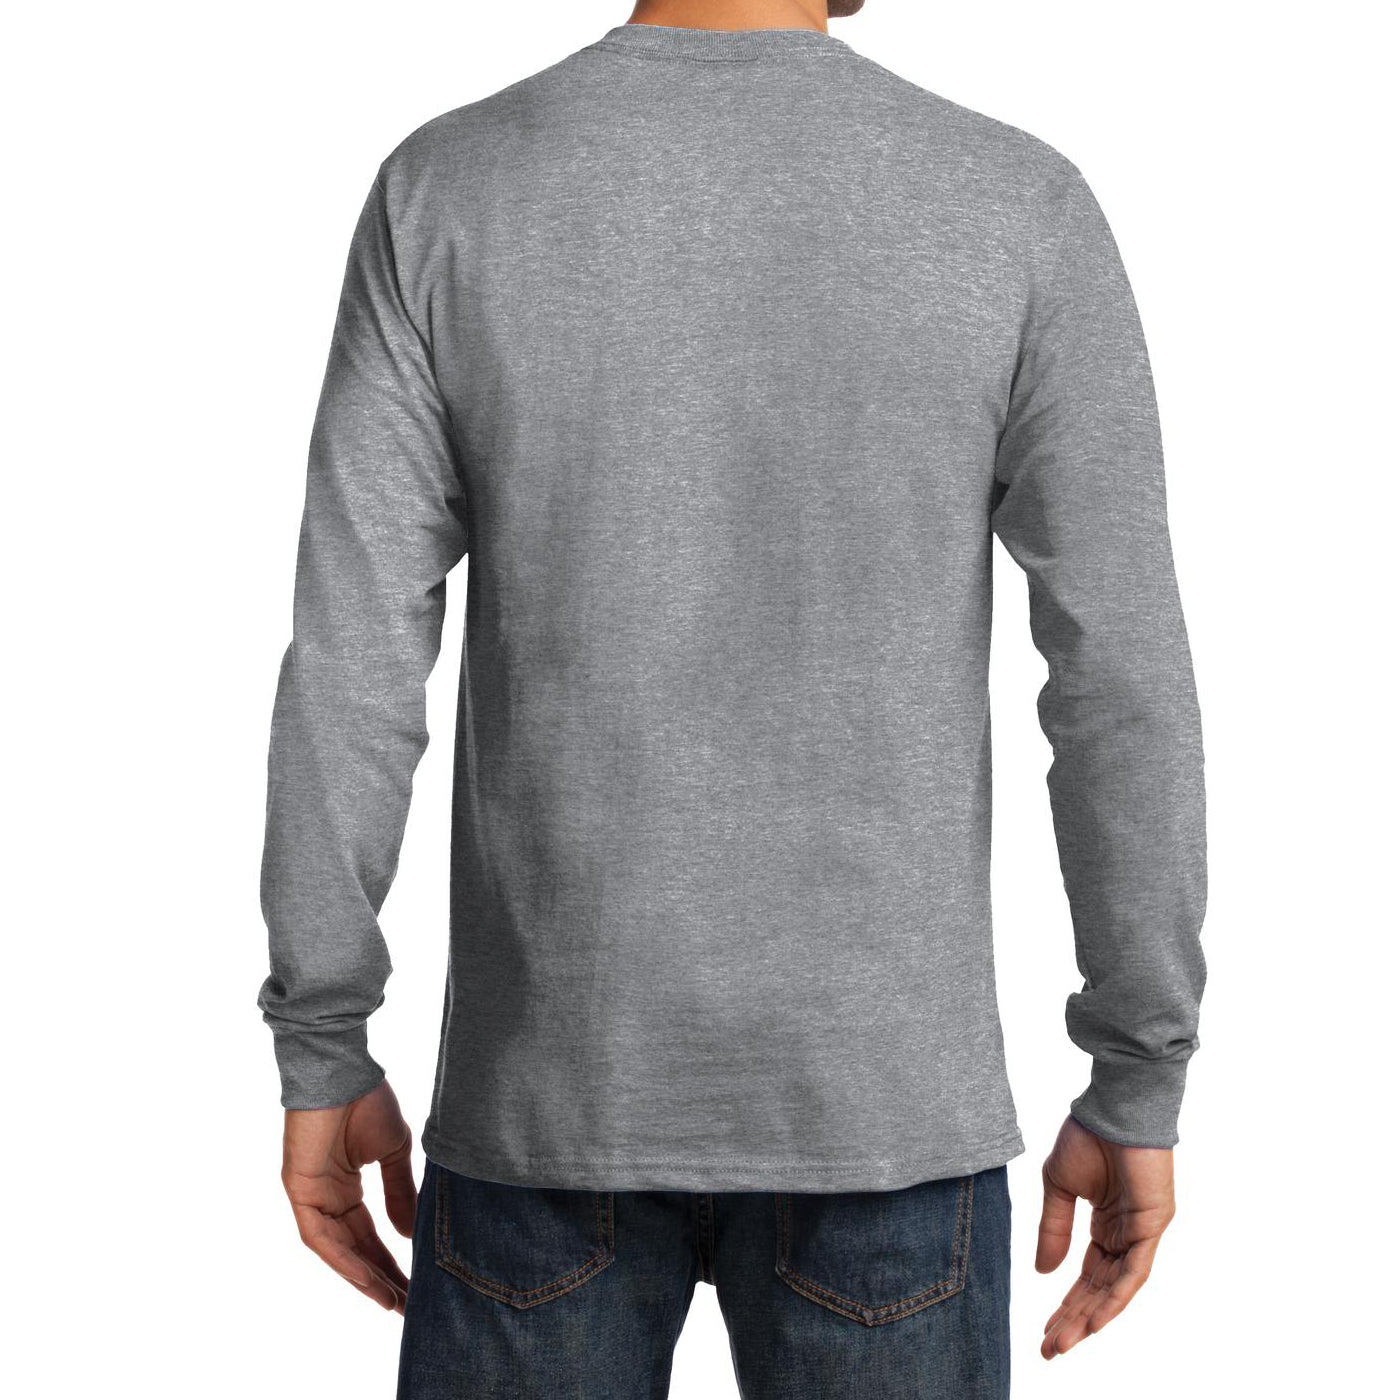 Men's Long Sleeve Essential Tee - Athletic Heather - Back